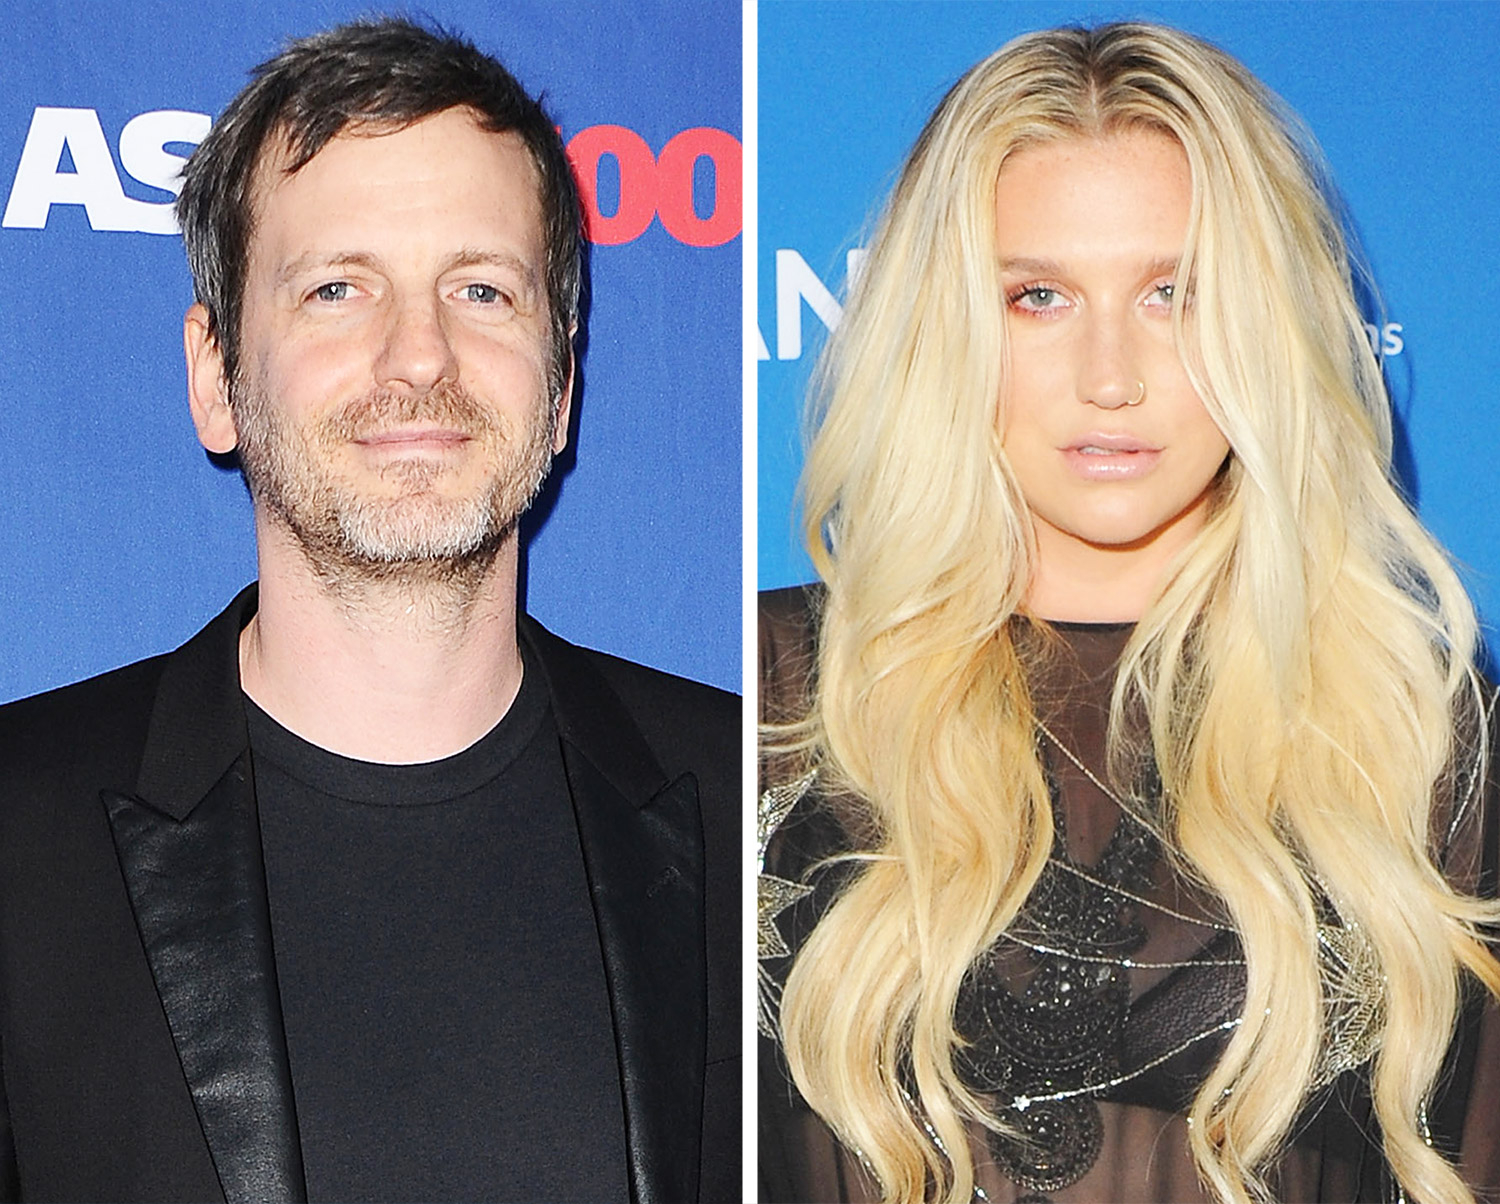 Dr. Luke and Kesha